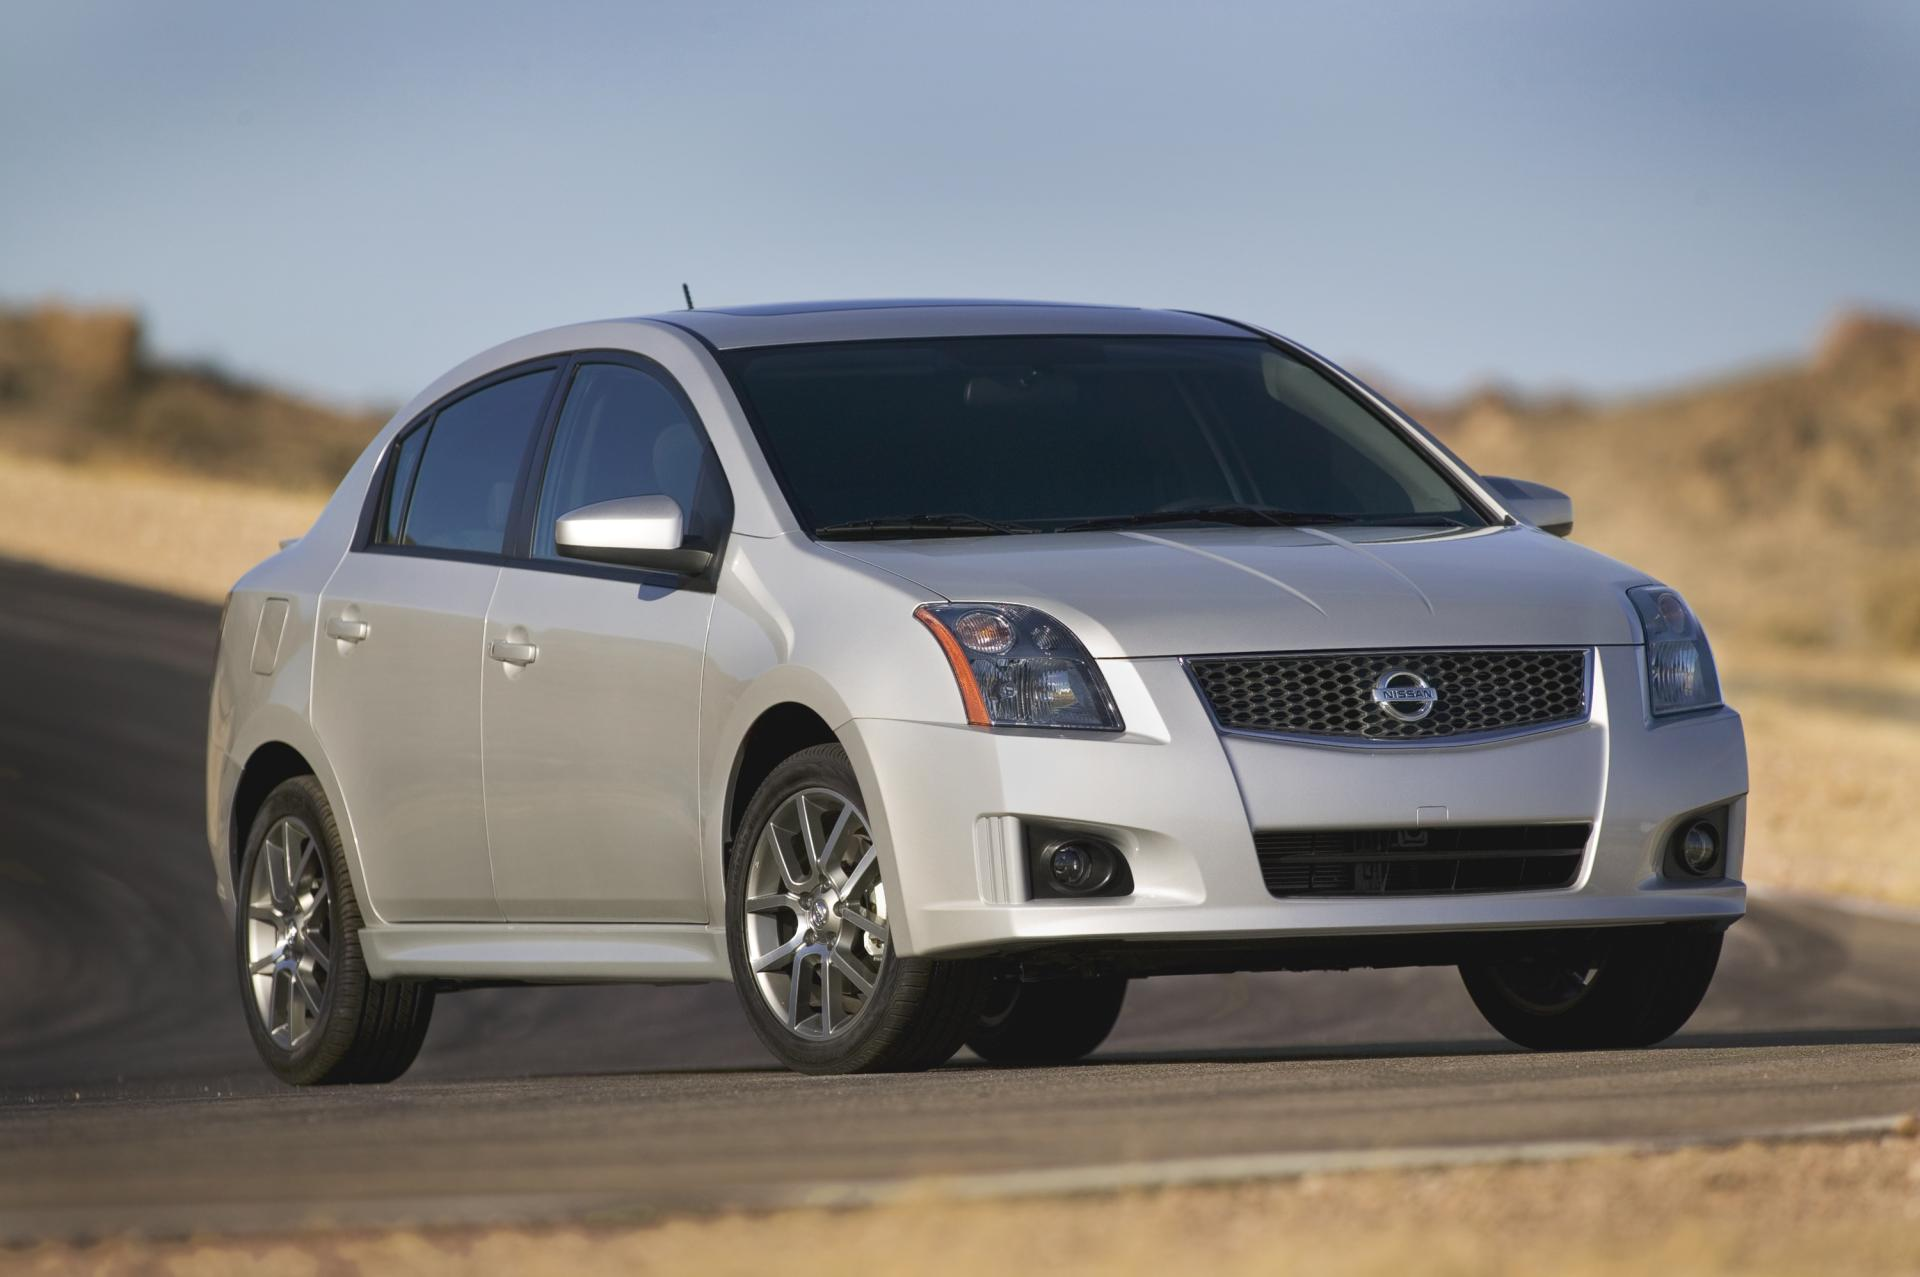 2012 Nissan Sentra SE-R News and Information - conceptcarz.com